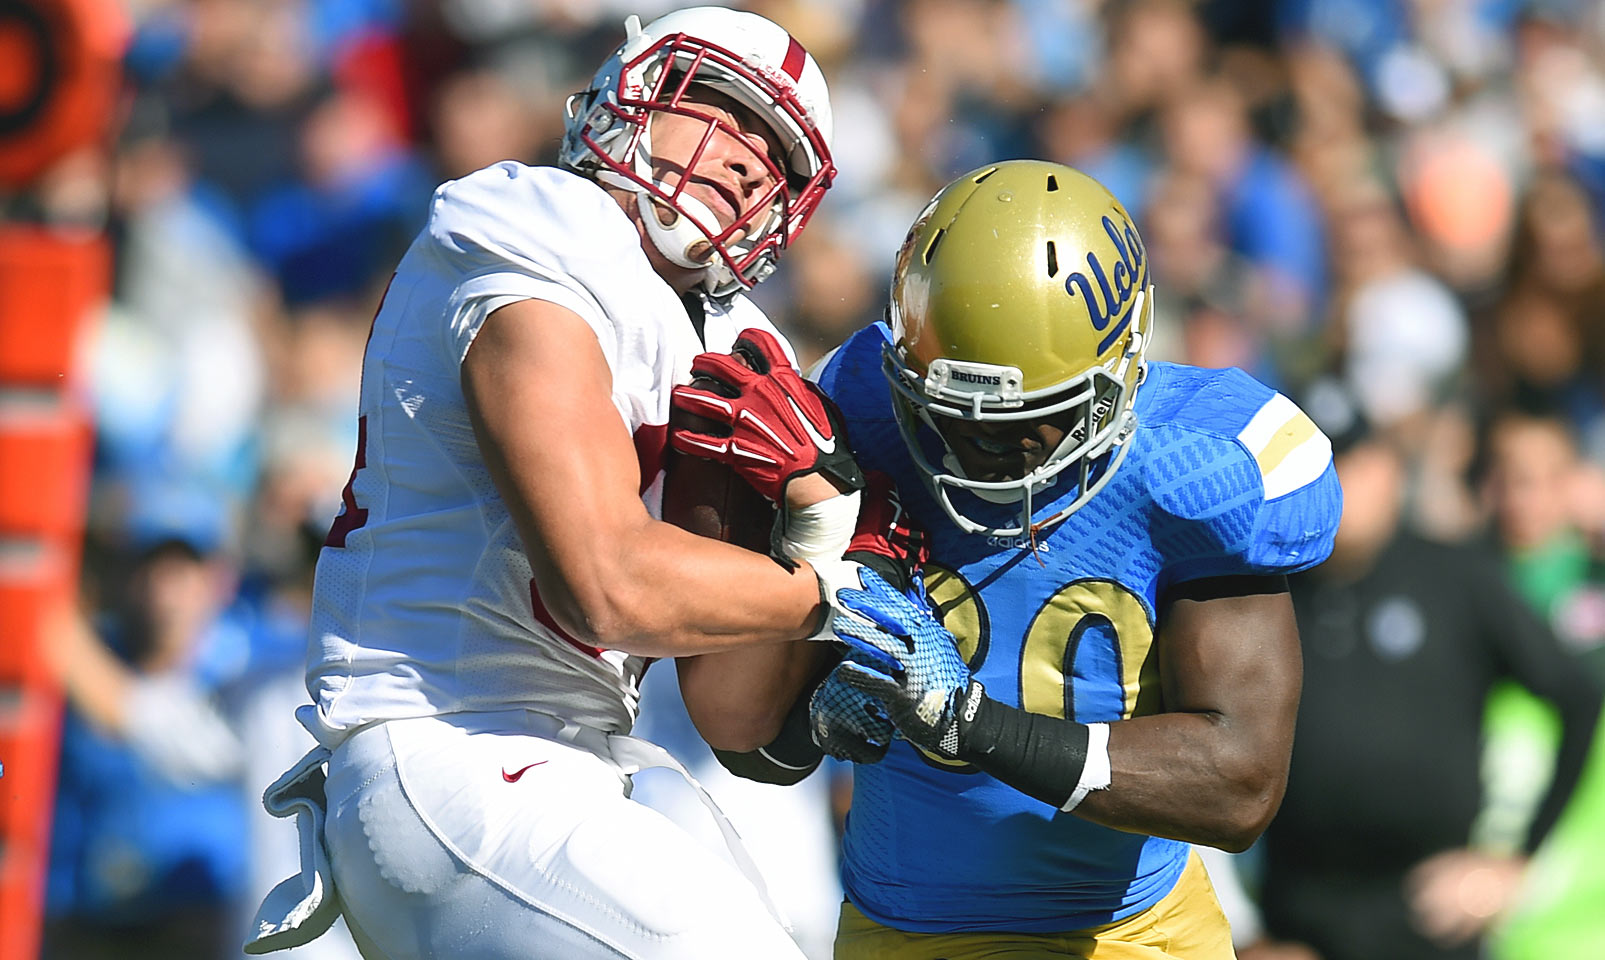 Jack is a tackle machine for the Bruins, and also spends some time evading tacklers on the other side of the ball. The former four-star recruit played both linebacker and running back in his first two seasons in Los Angeles, and he continues to be a true dual threat. With All-America linebacker Eric Kendricks gone, Jack's defensive responsibilities only increase.